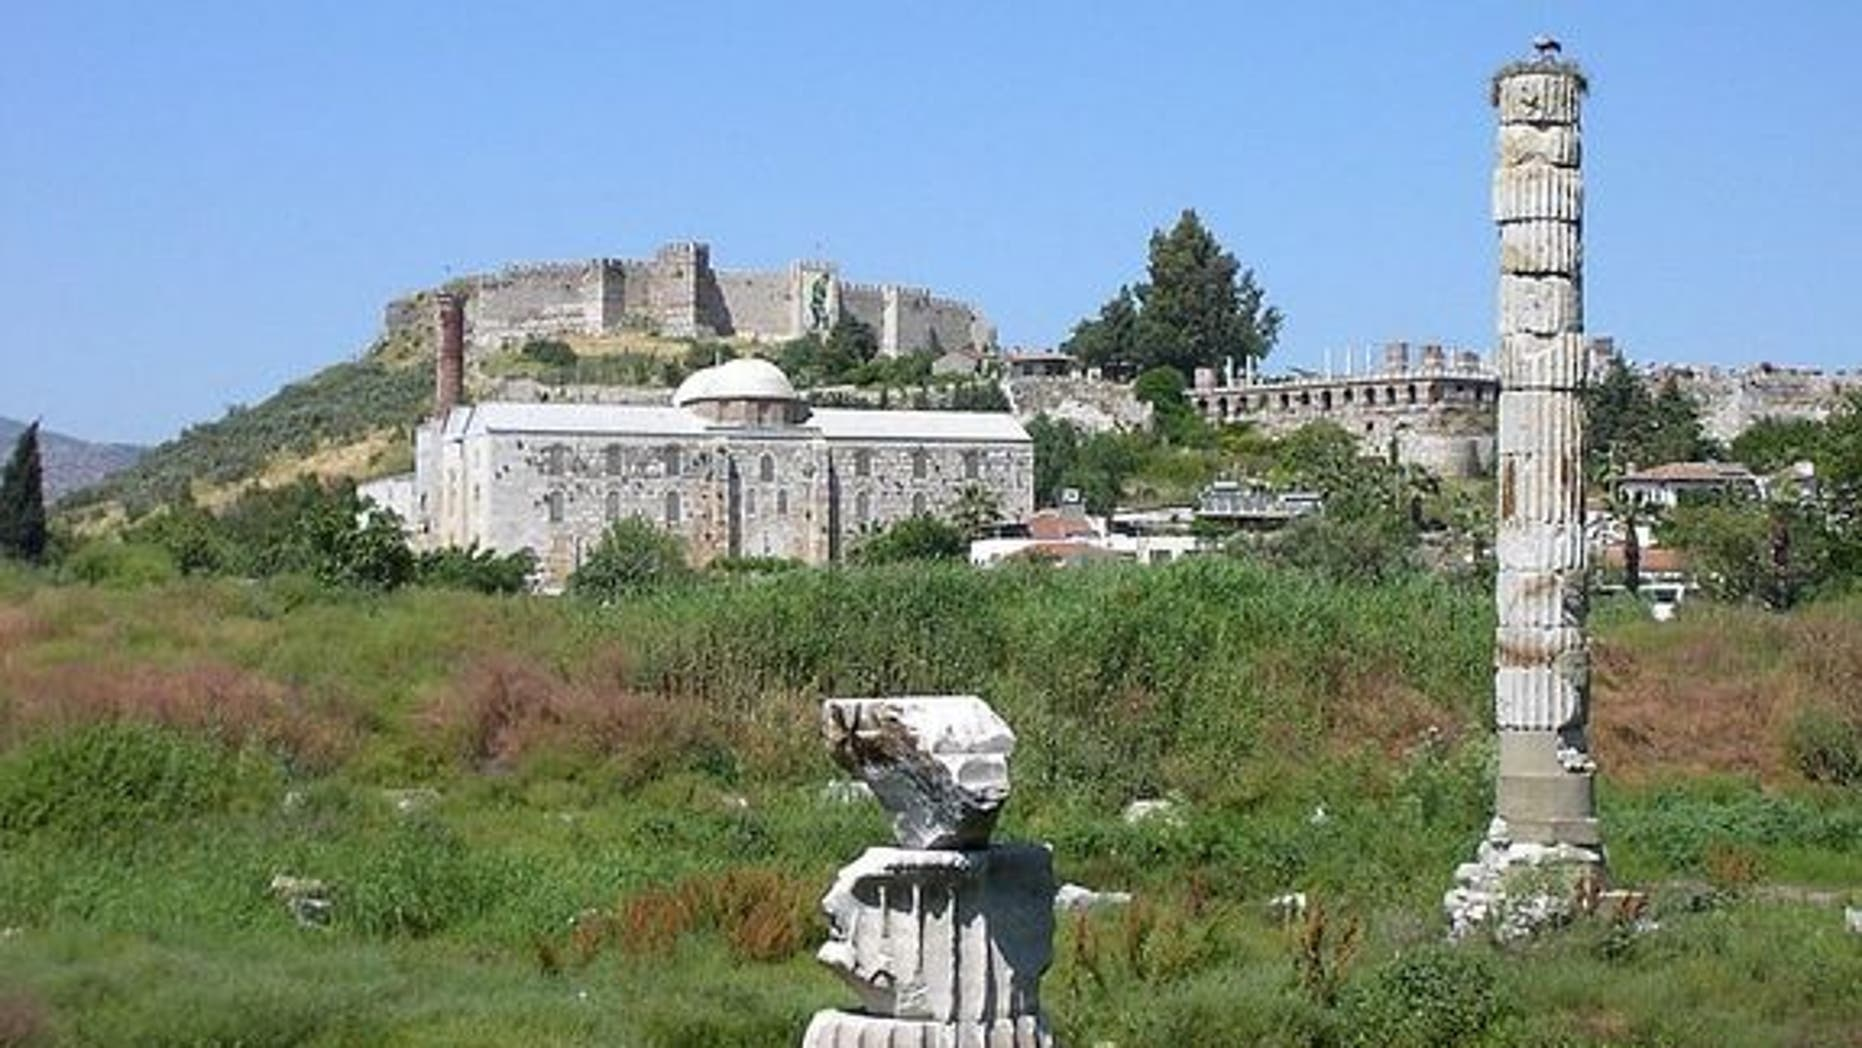 The site of the Temple of Artemis in Ephesus, where Cleopatra had her sister Arsinoe murdered.